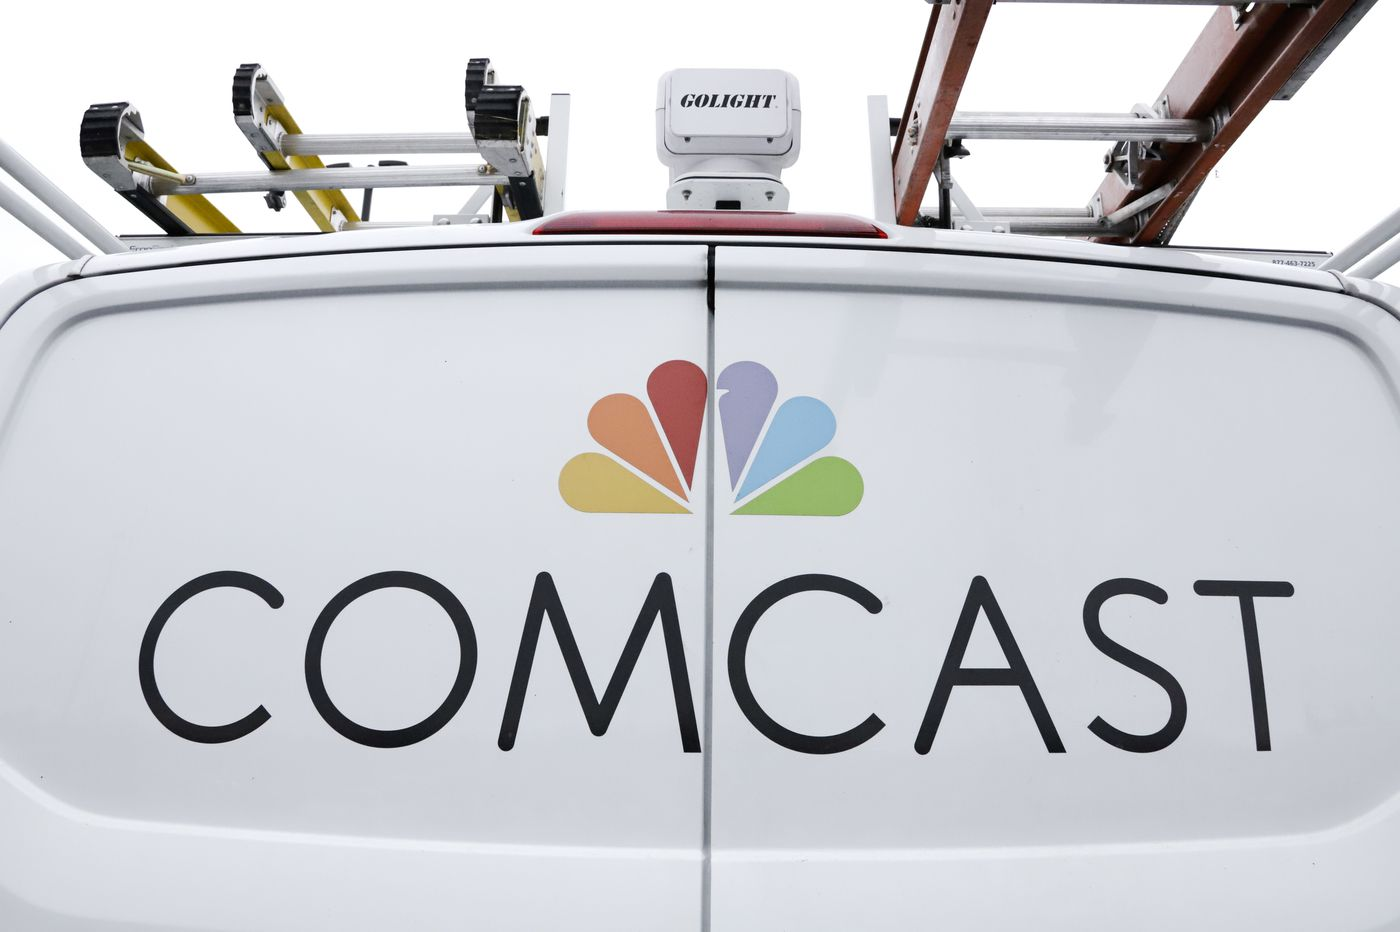 Comcast trying to put Denver sports channel out of business, lawsuit alleges